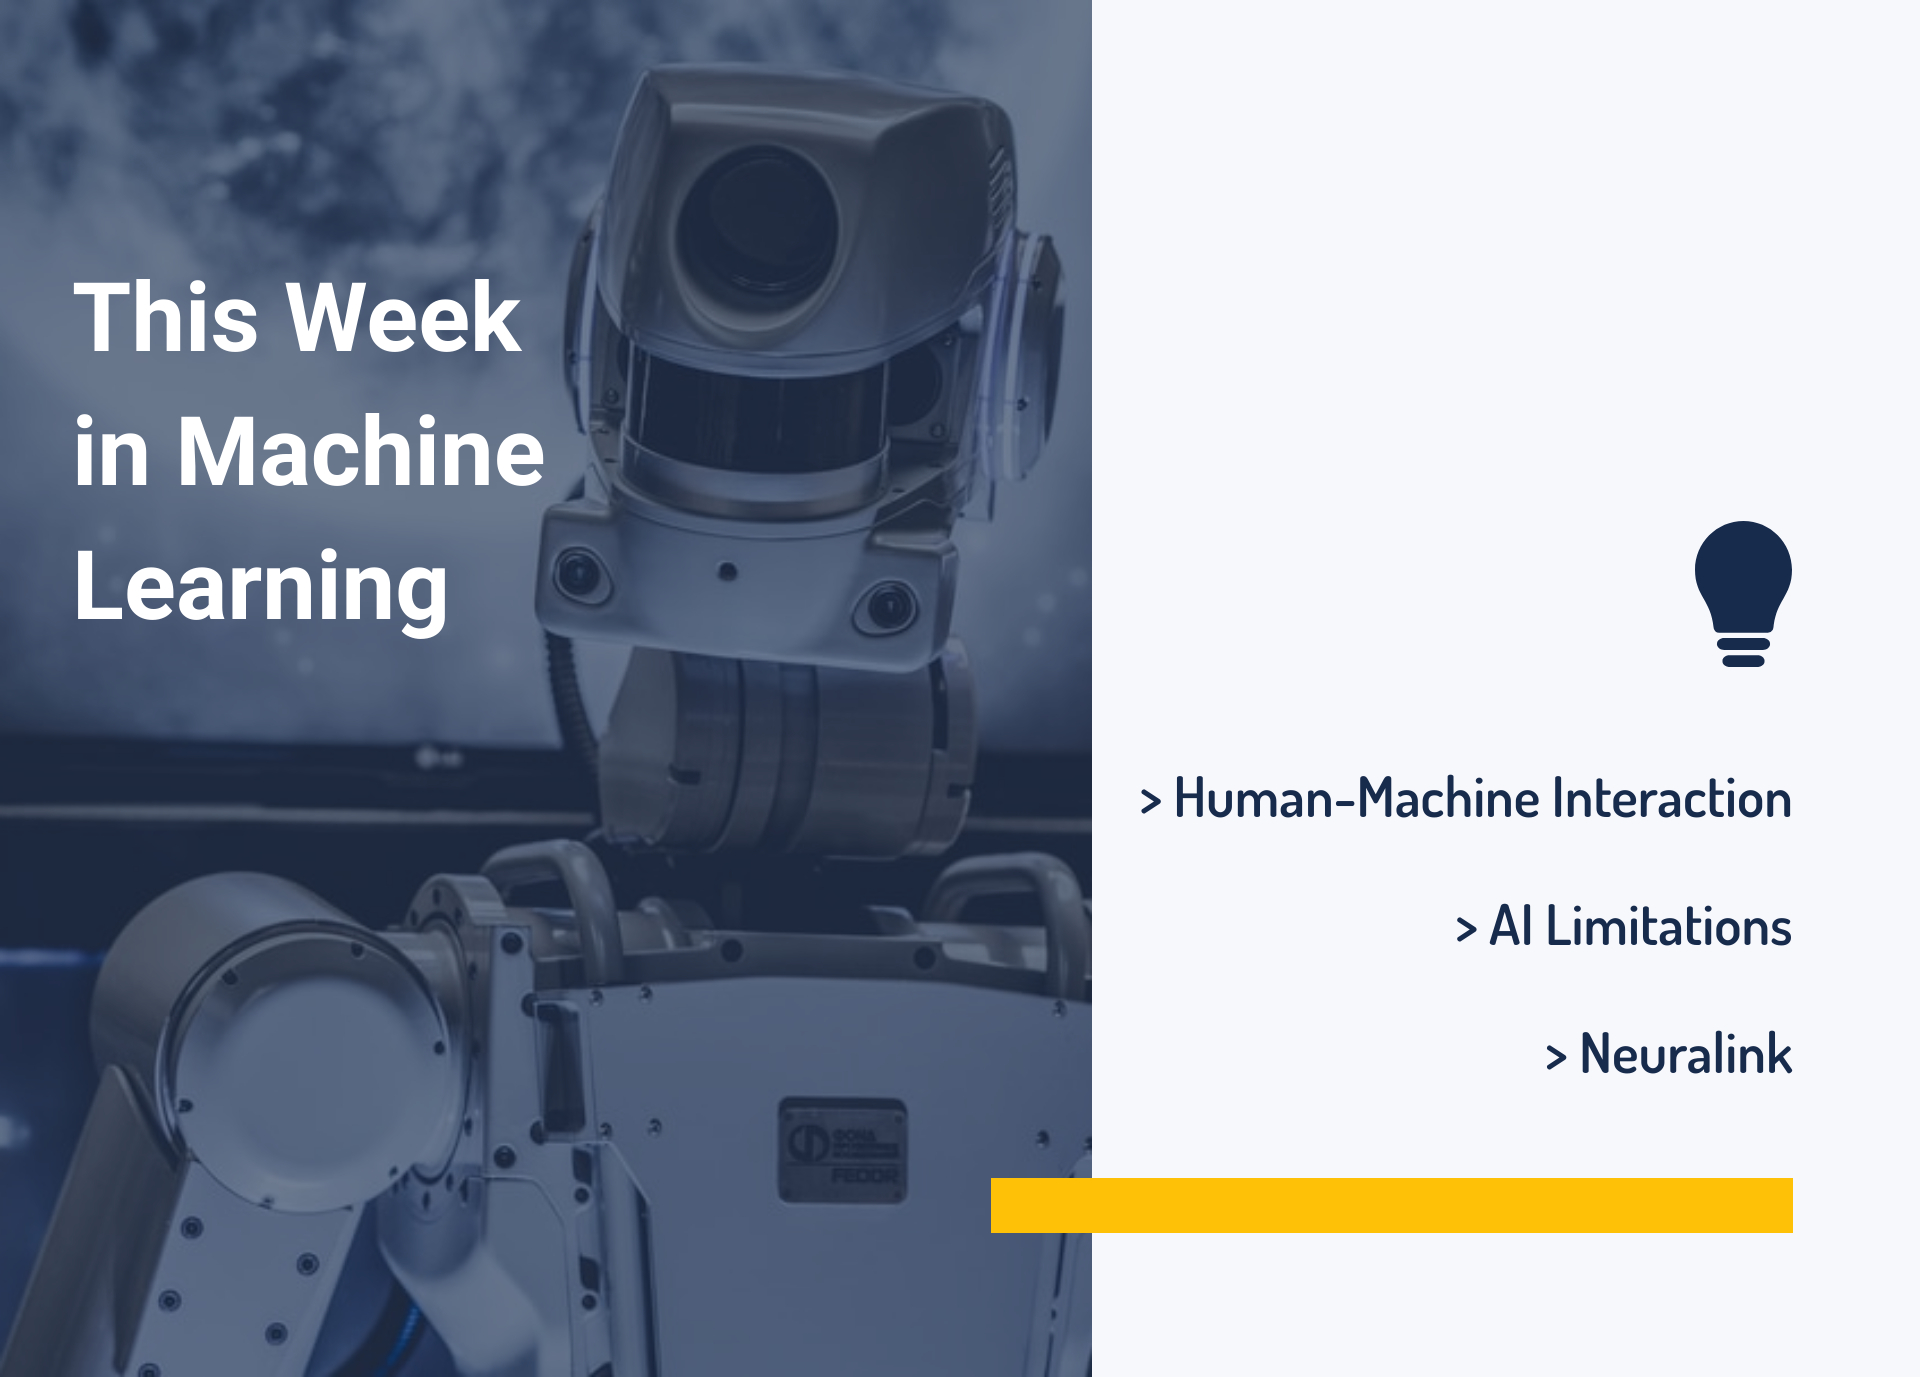 This Week in Machine Learning: Human-Machine Interaction, AI Limitations, and Neuralink